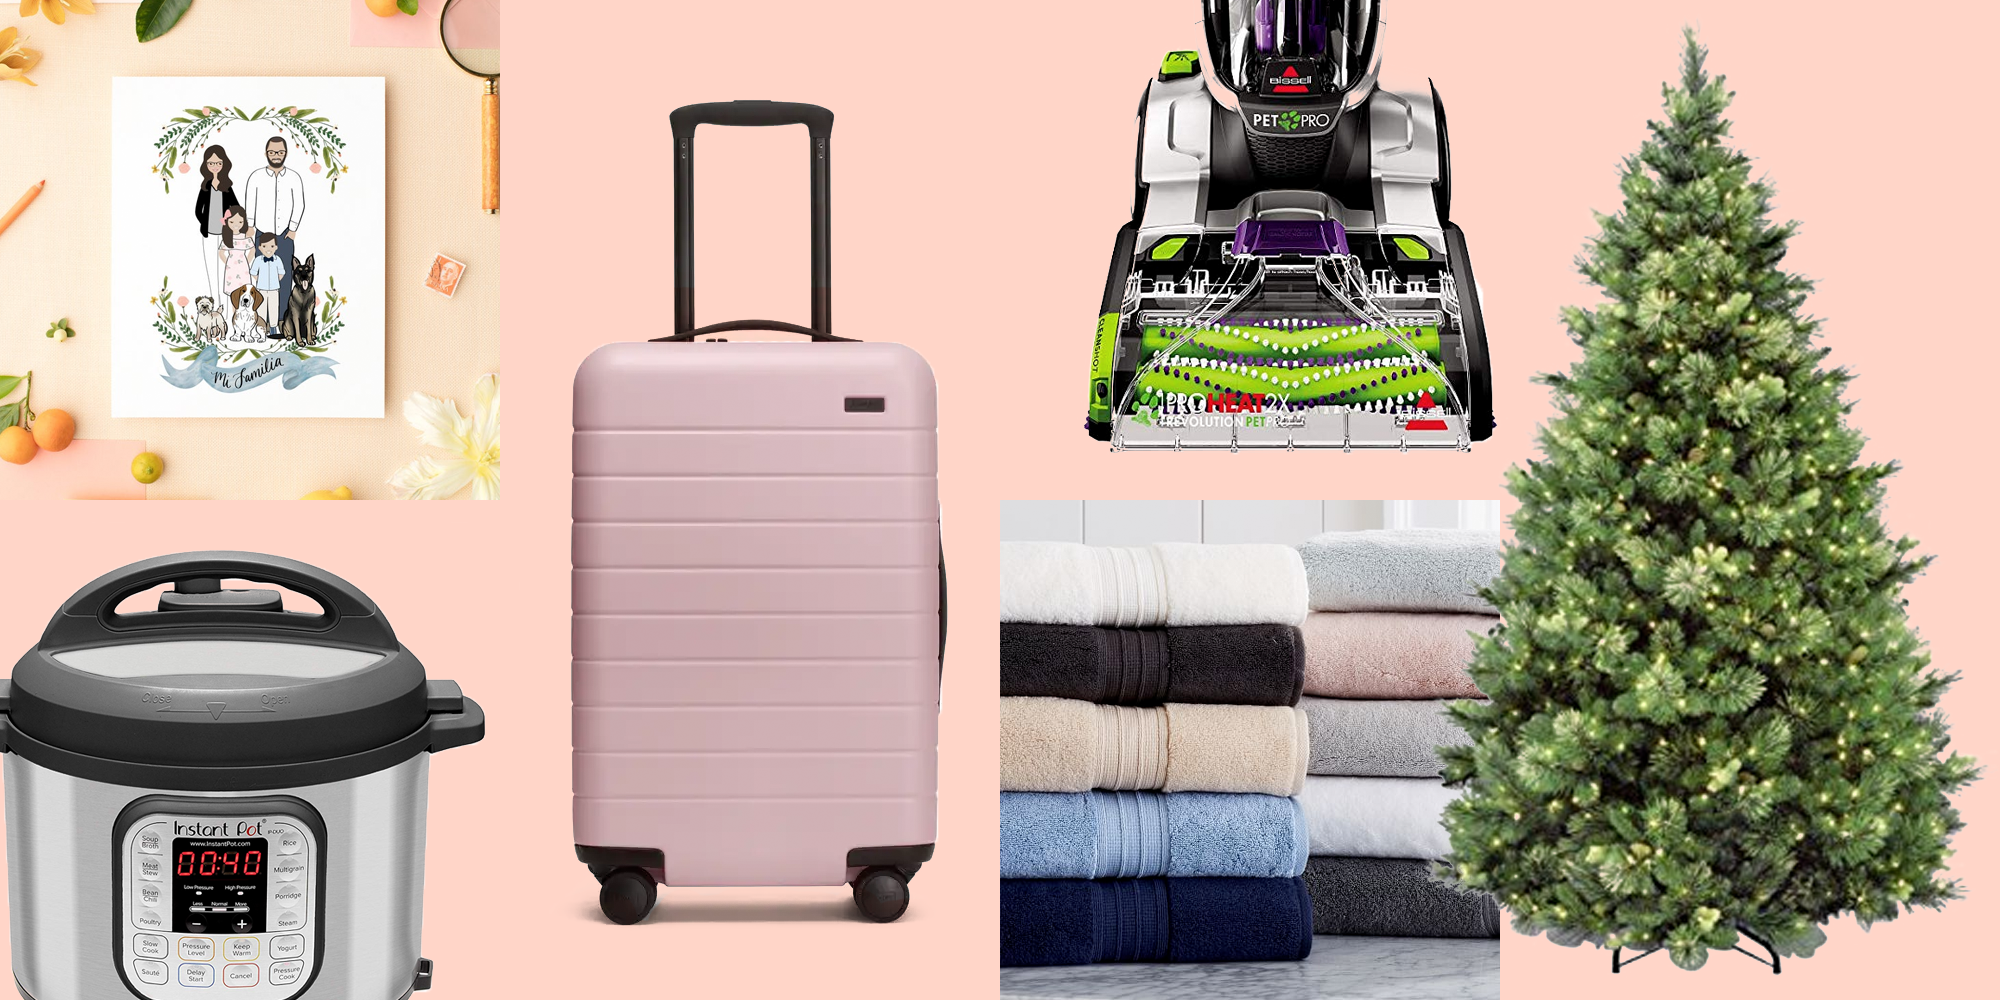 The 15 Products Our Readers Couldn't Stop Buying in 2019